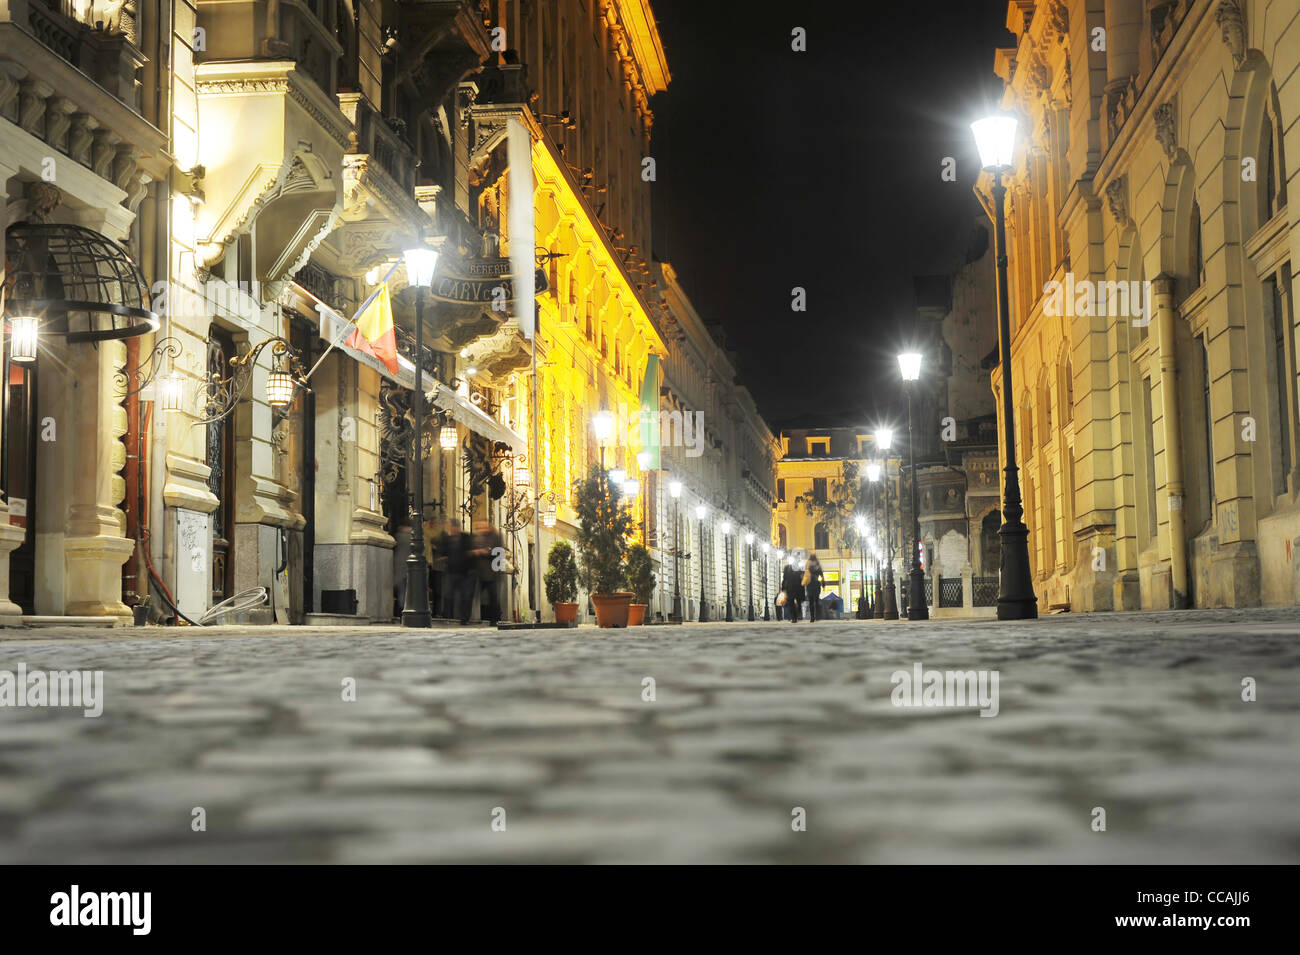 Old City of Bucharest in the night.The area is historic for this is where Bucharest was founded in the 1300s. - Stock Image